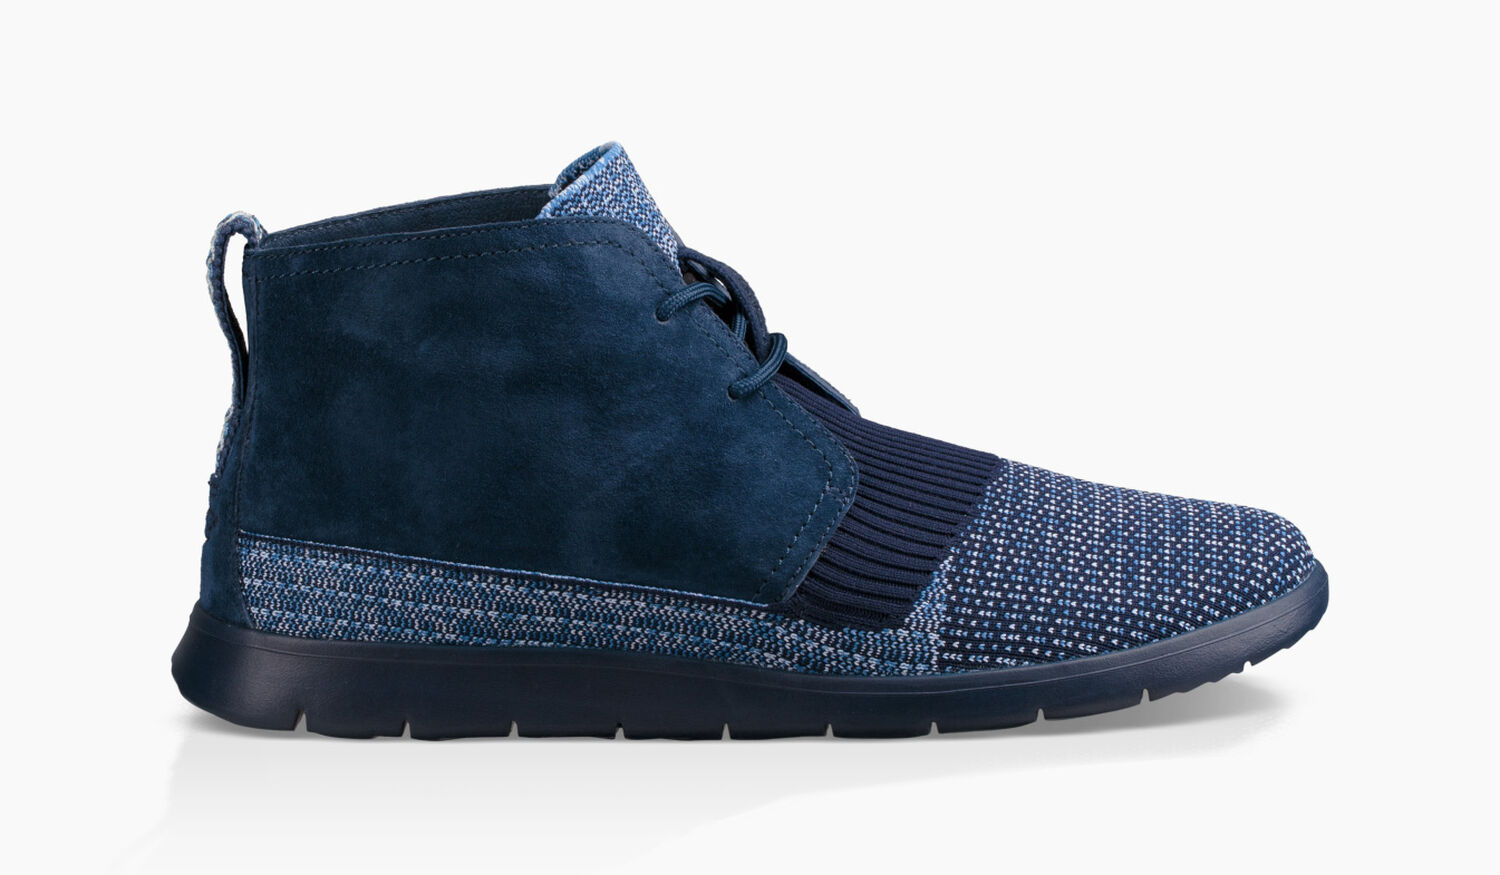 35c2305939d Men's Share this product Freamon Hyperweave 2.0